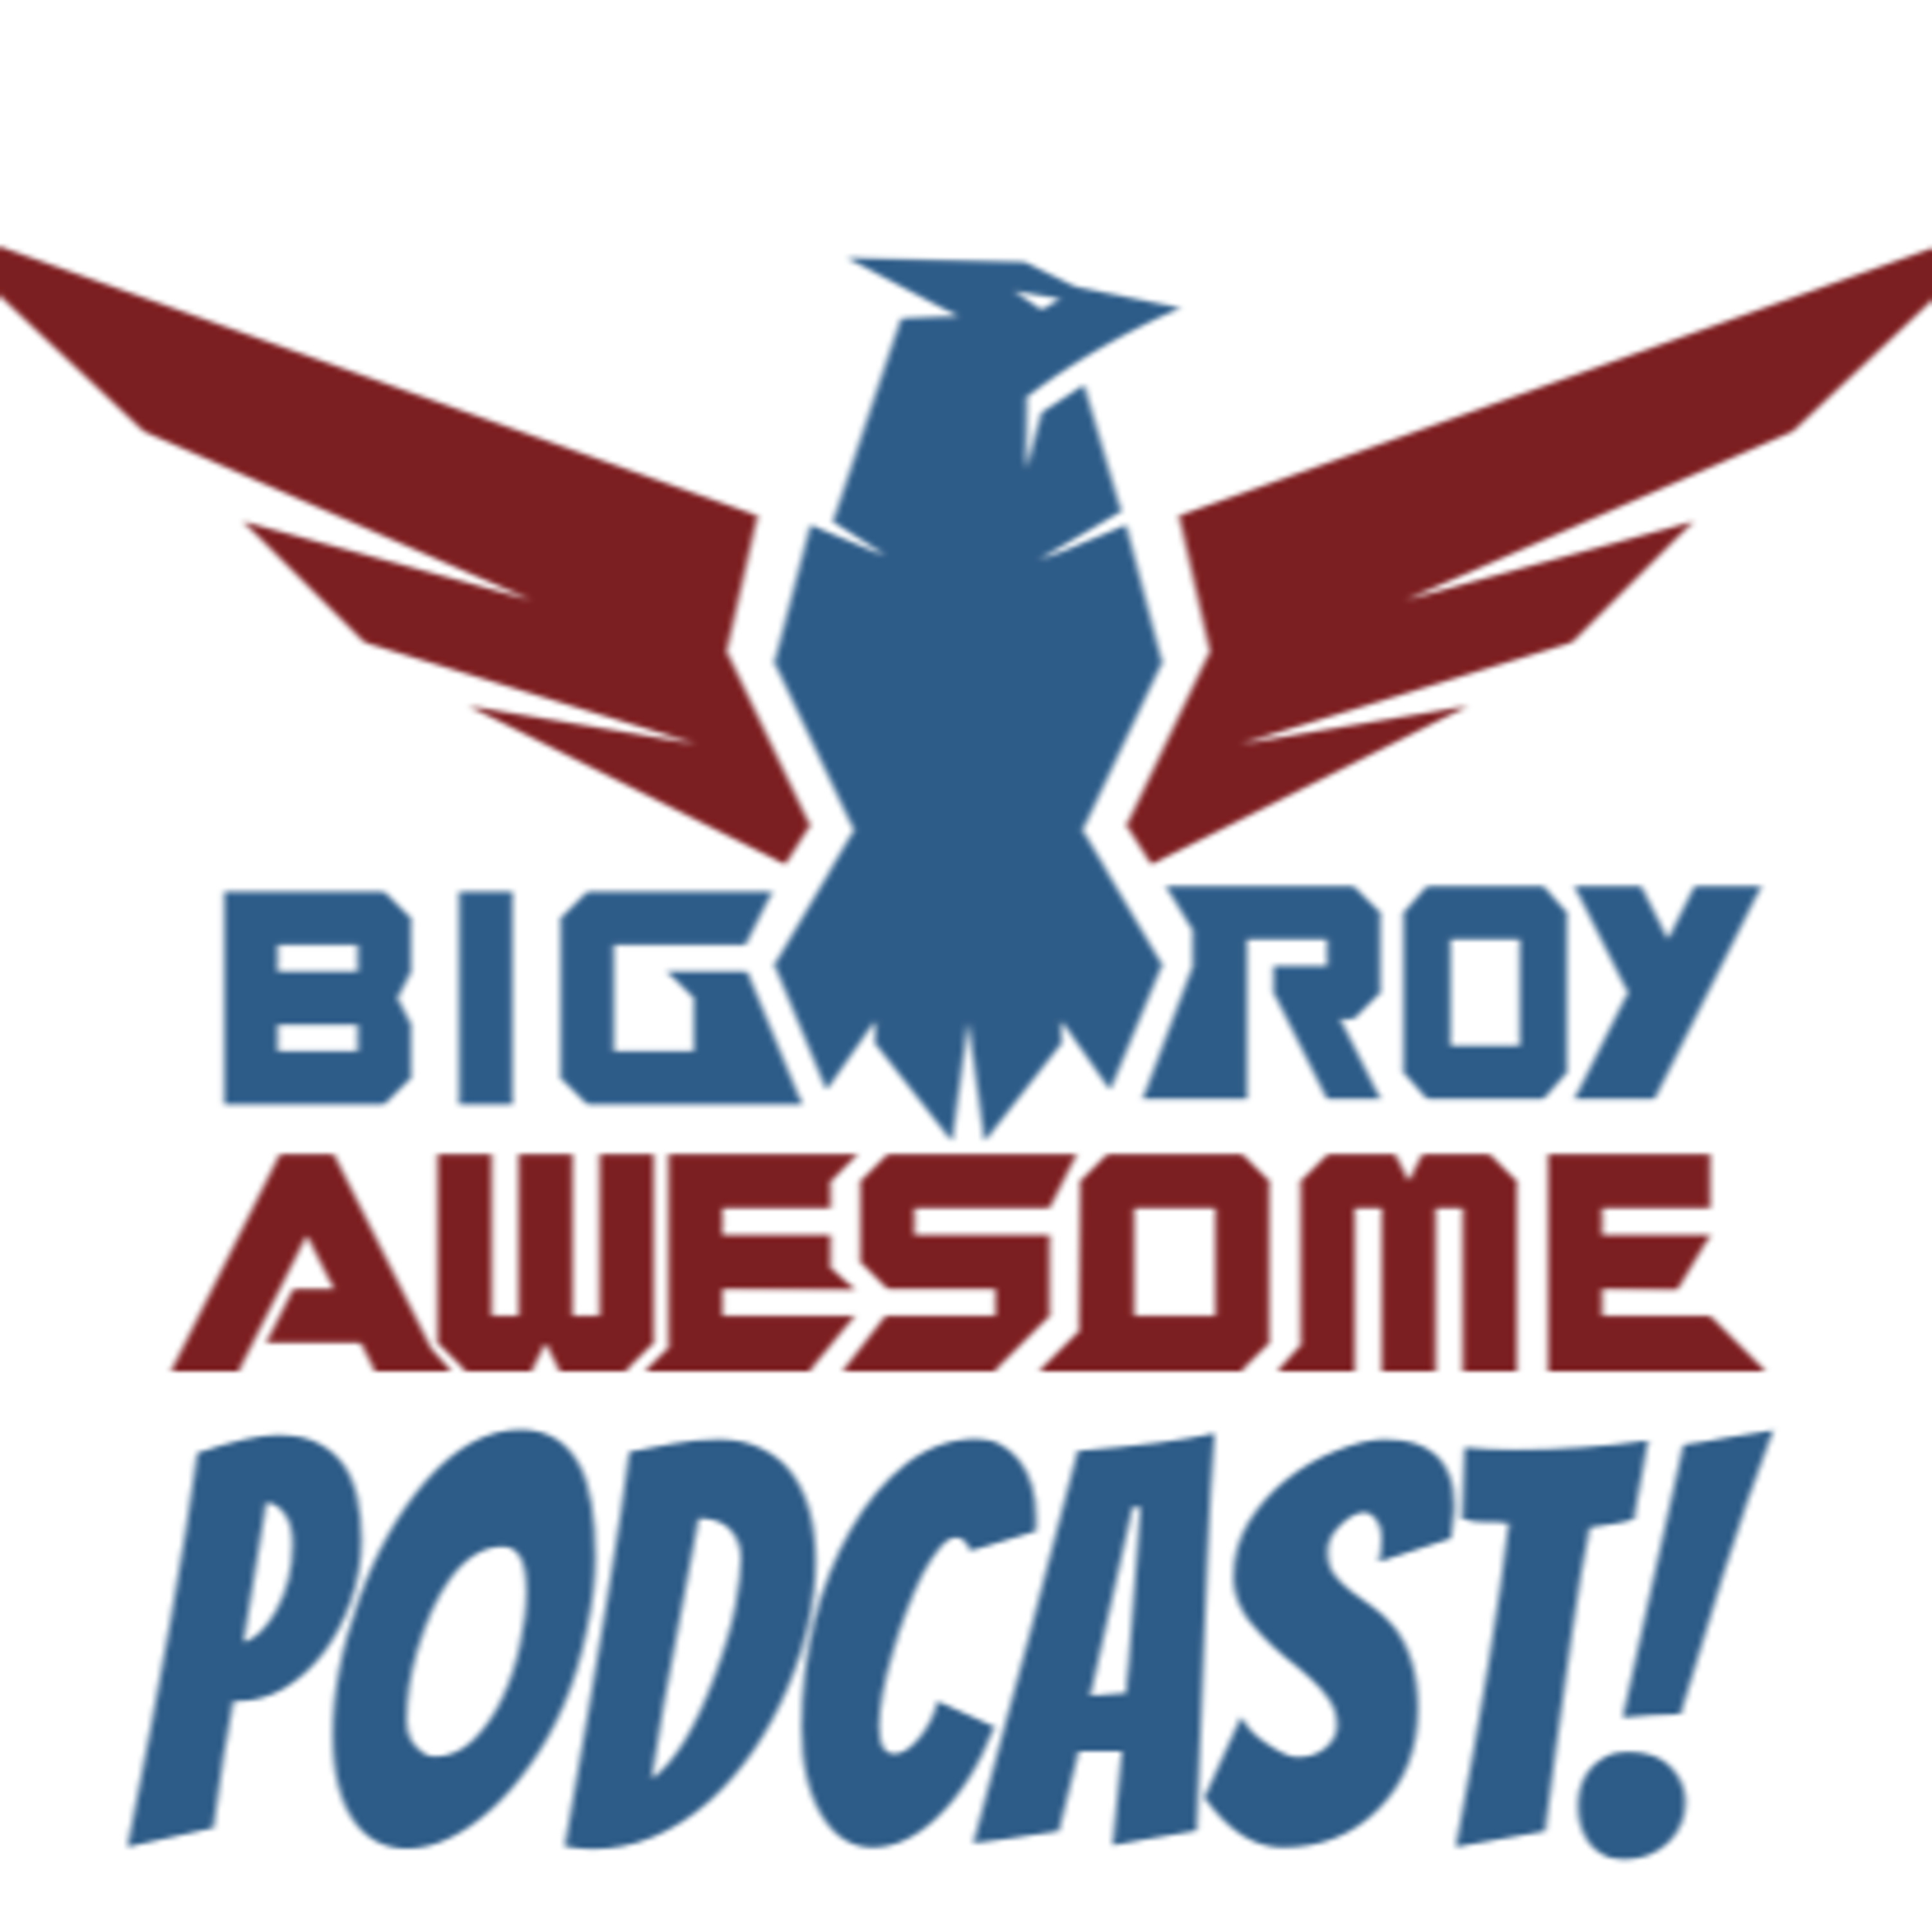 Big Roy Awesome Podcast Episode 1 - Welcome To The Awesome!